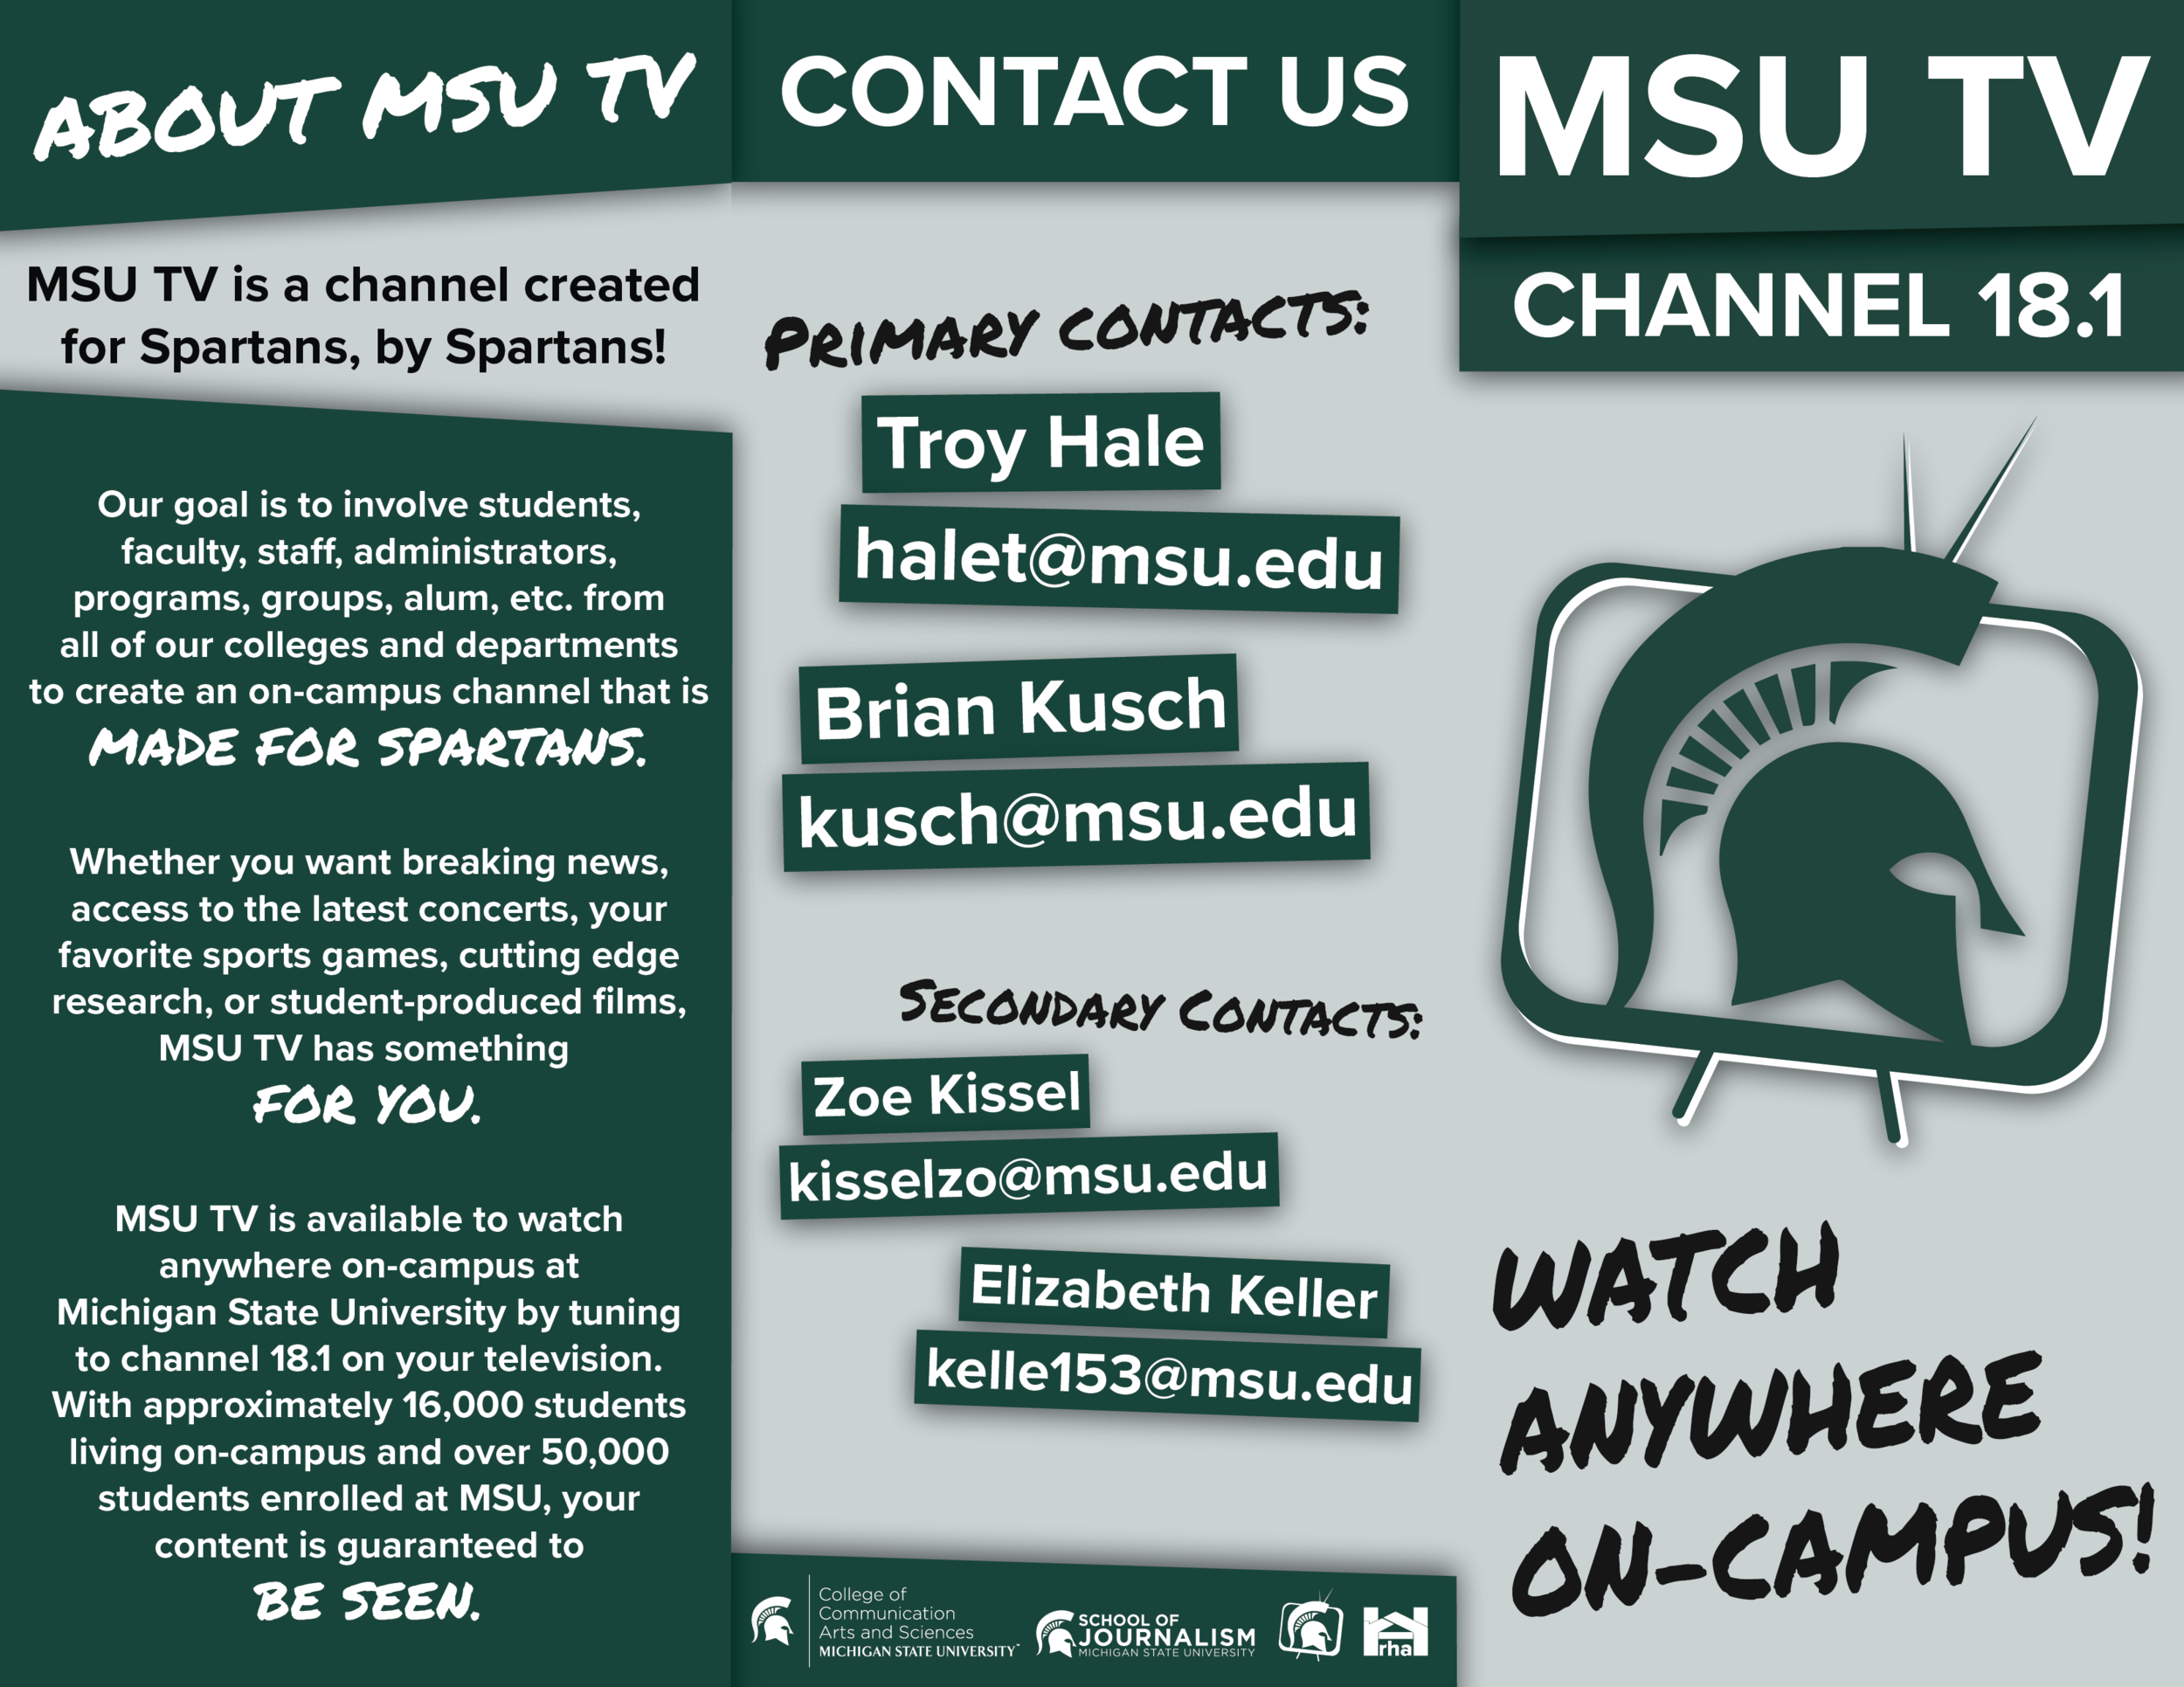 Zoe Kissel, Content Creator, Video Editing, Analog Photography, Graphic Design, Web Design, Motion Graphics, Social Media, Documentary Production, Scan Adapters, Michigan State University.